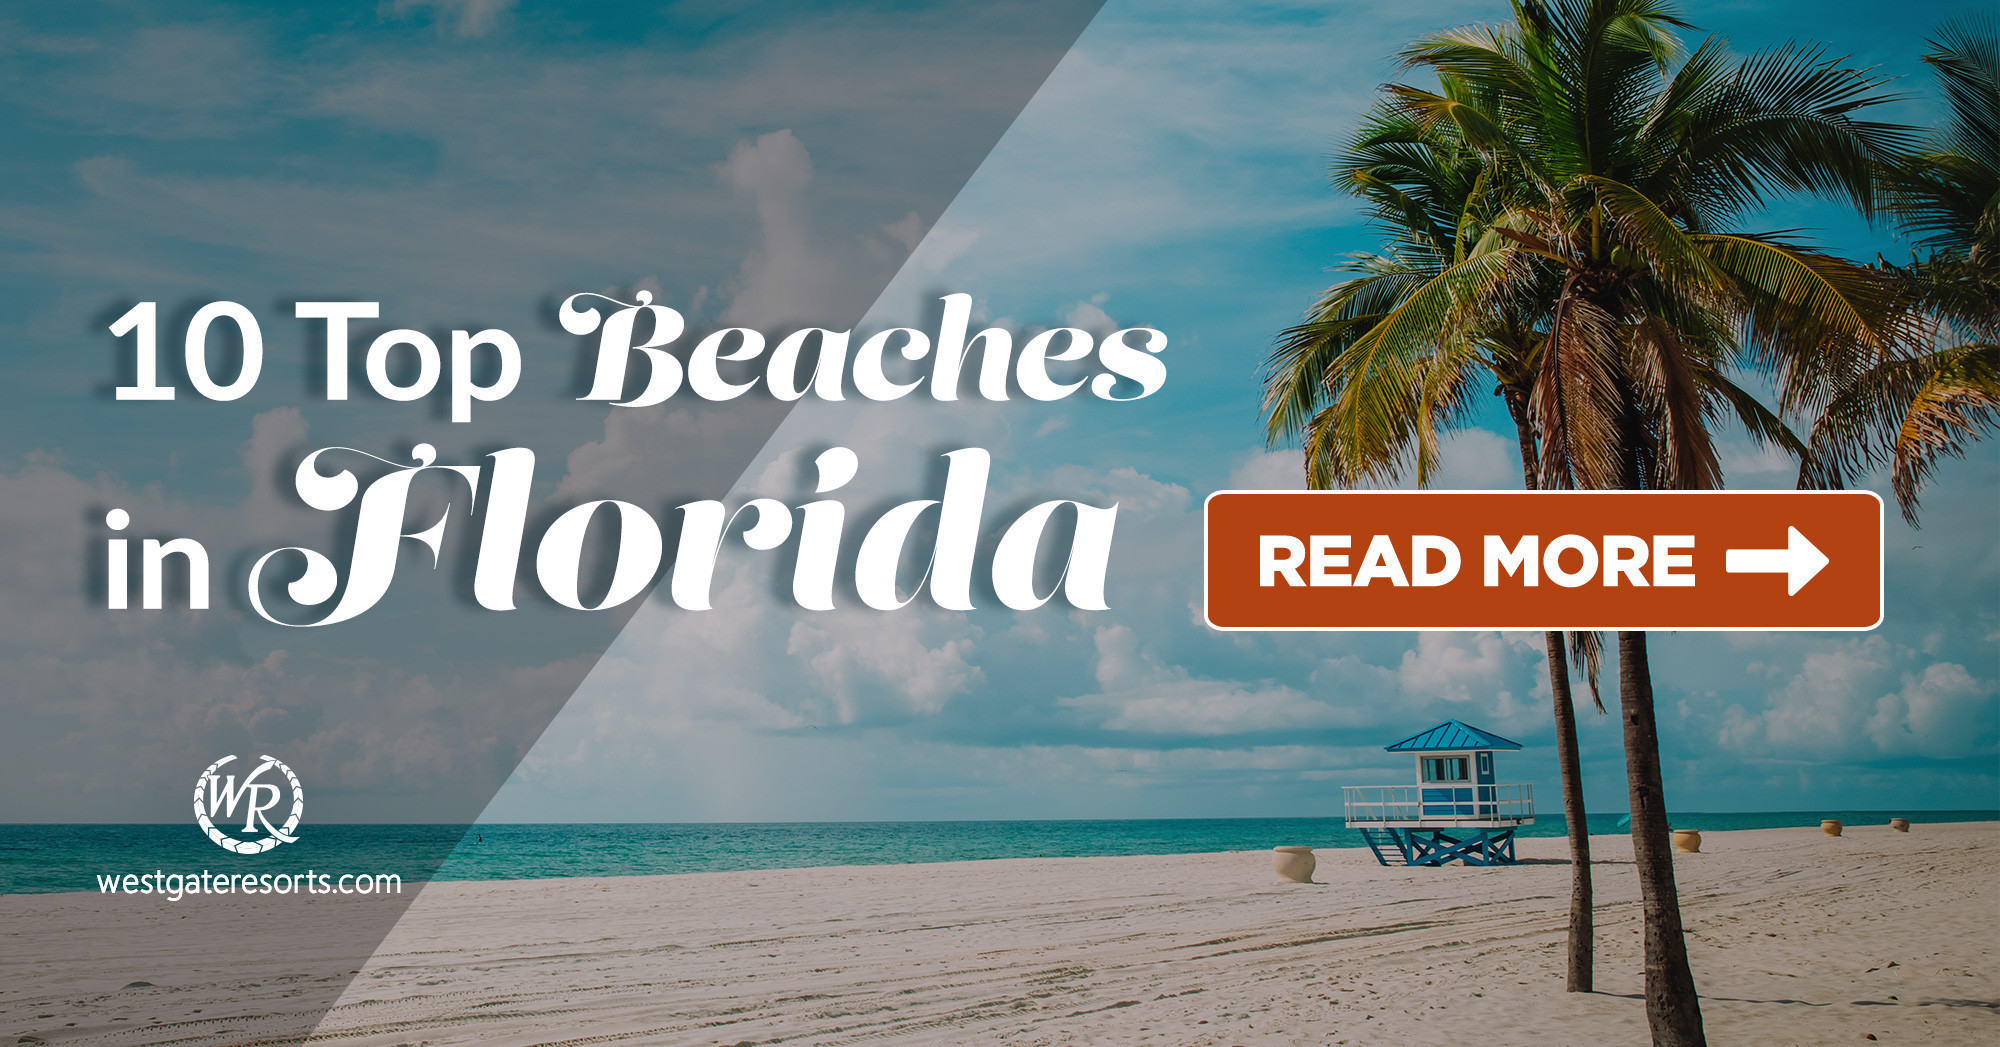 The 10 Top Beaches in Florida